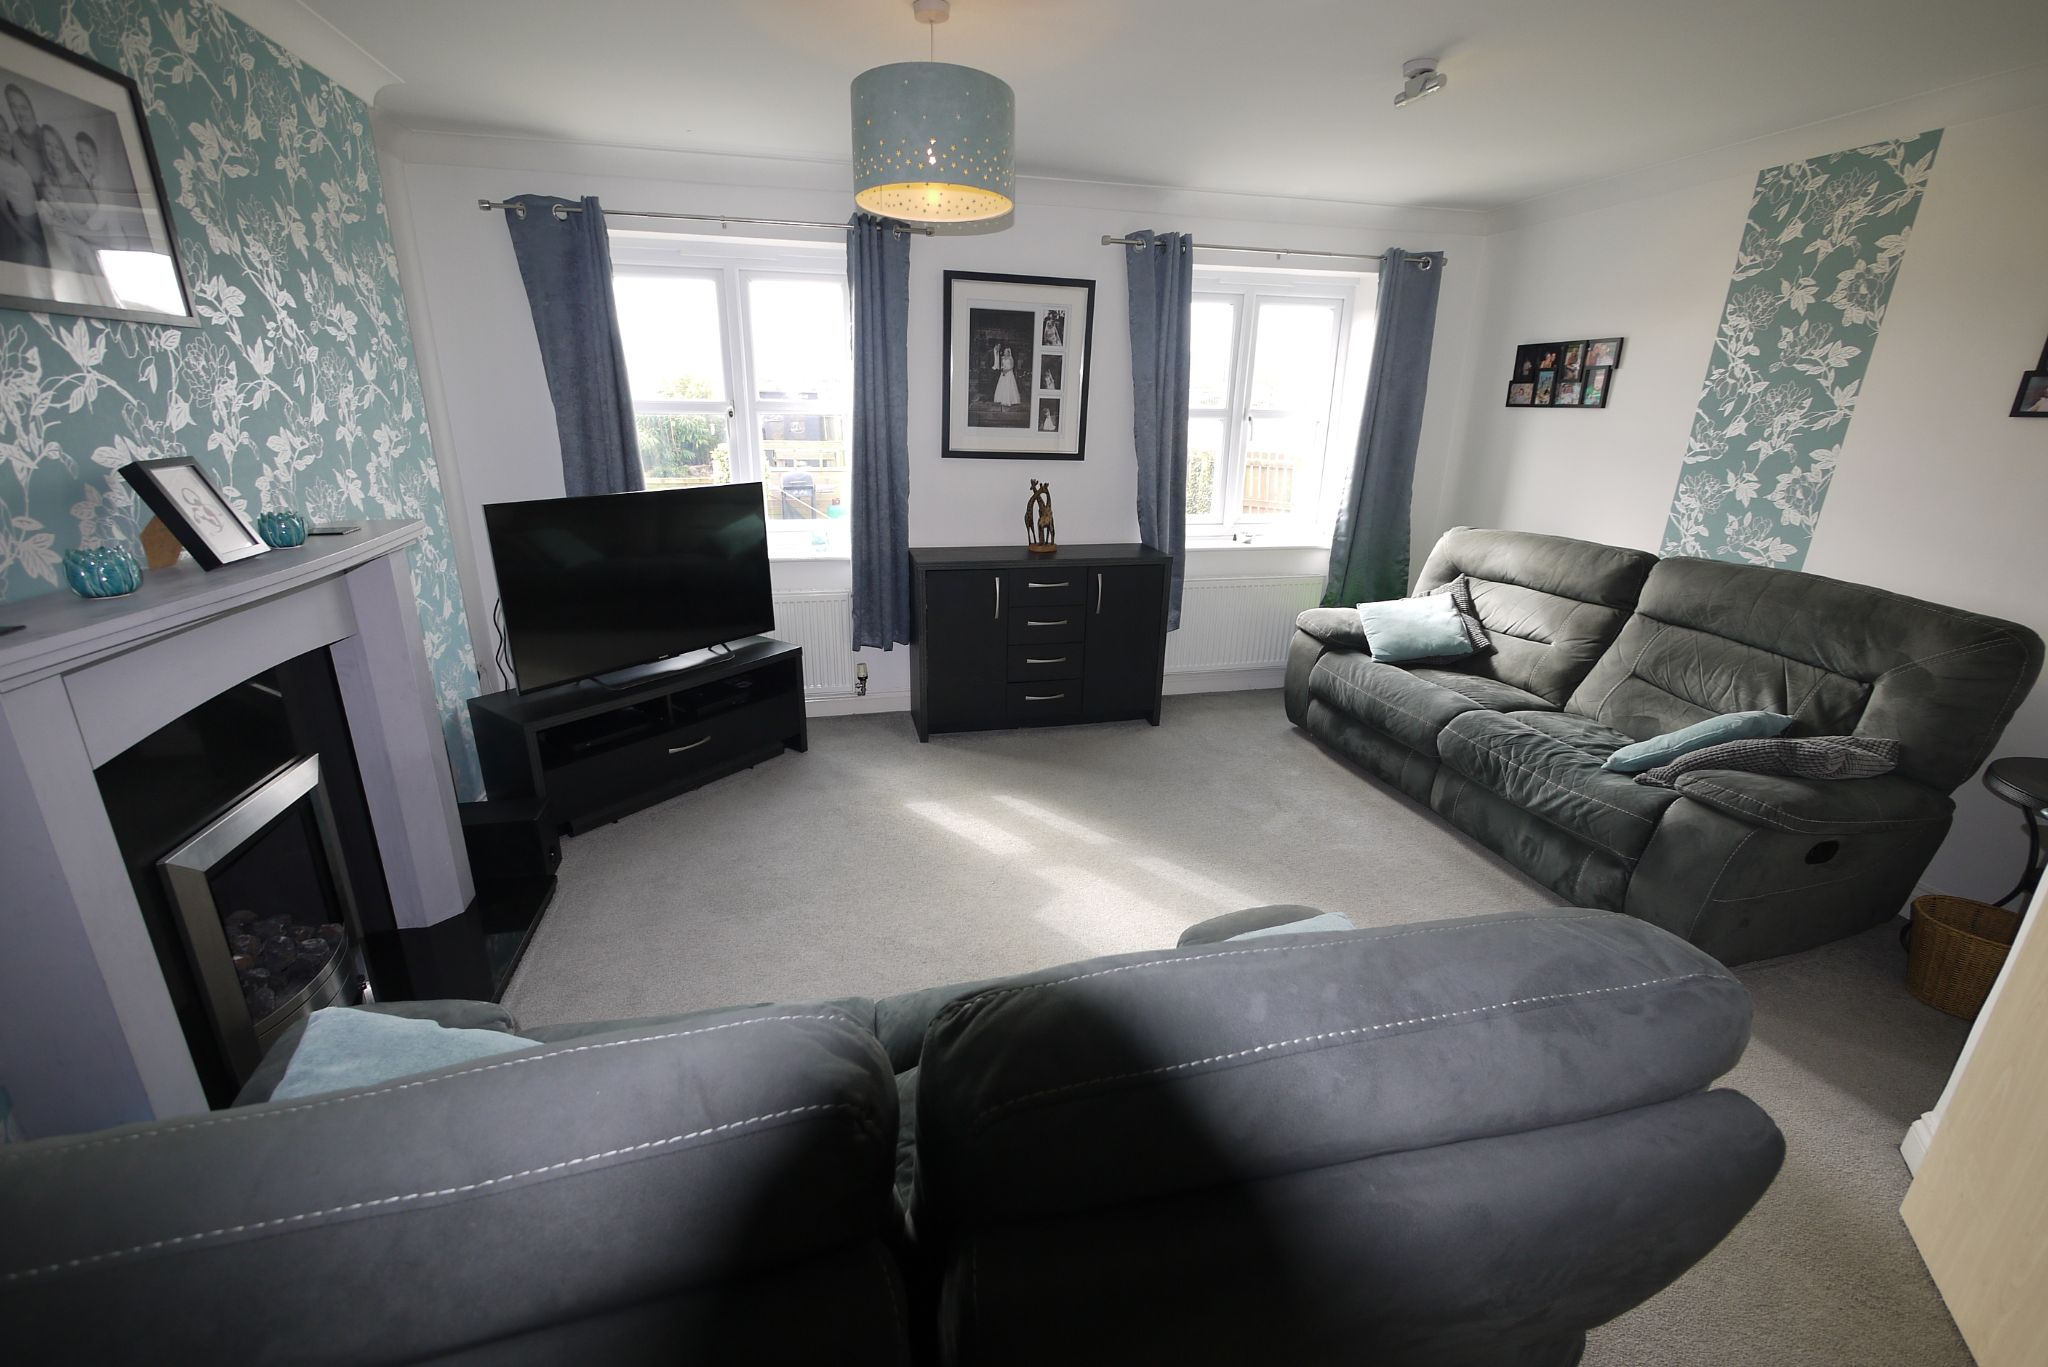 4 bedroom town house SSTC in Brighouse - Lounge.